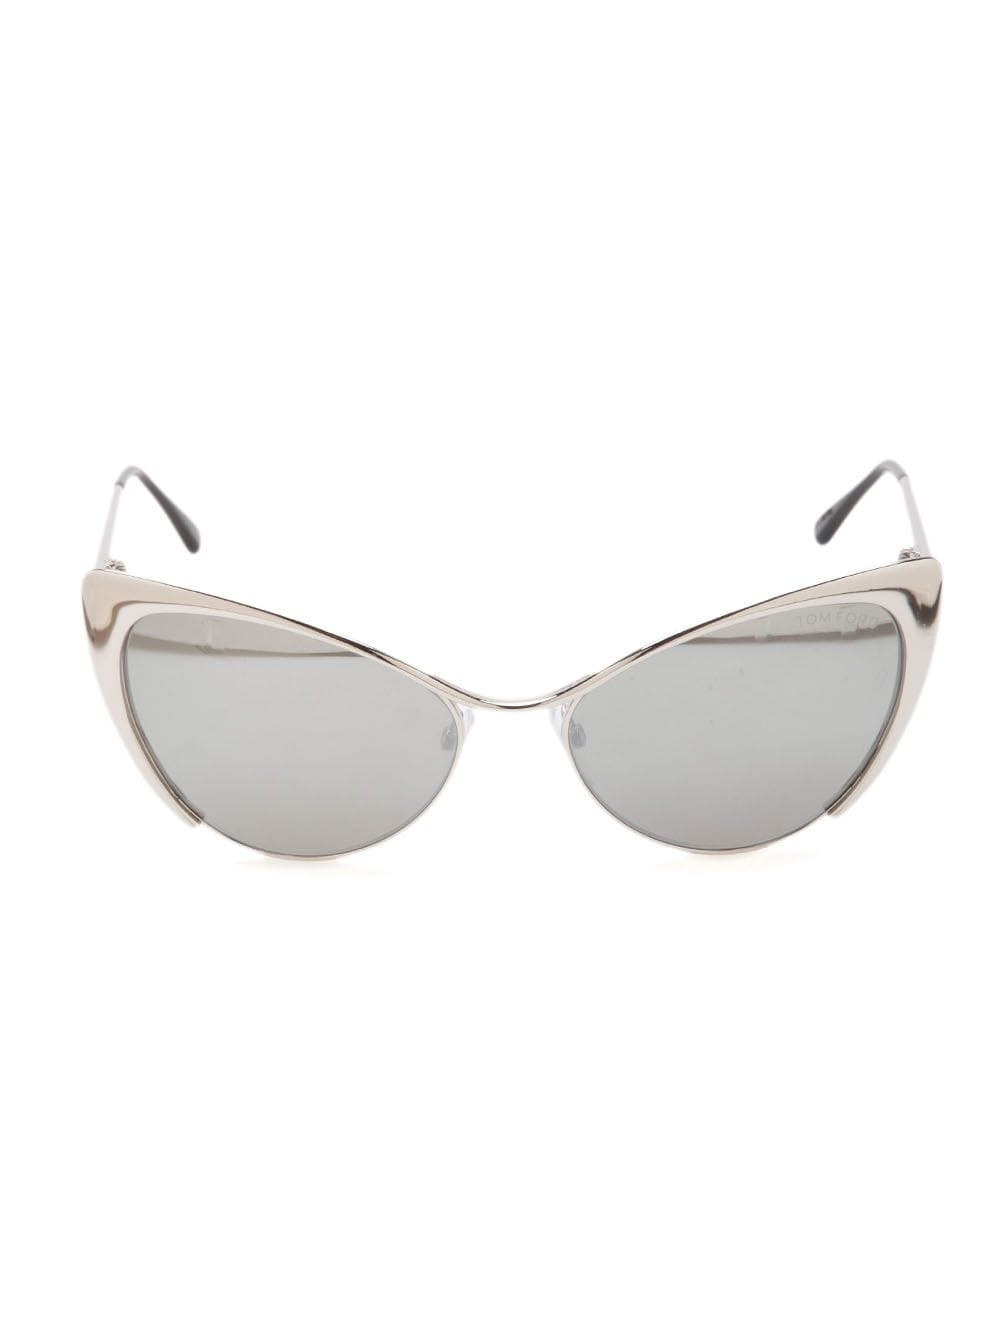 TOM FORD - Nastasya sunglasses 5